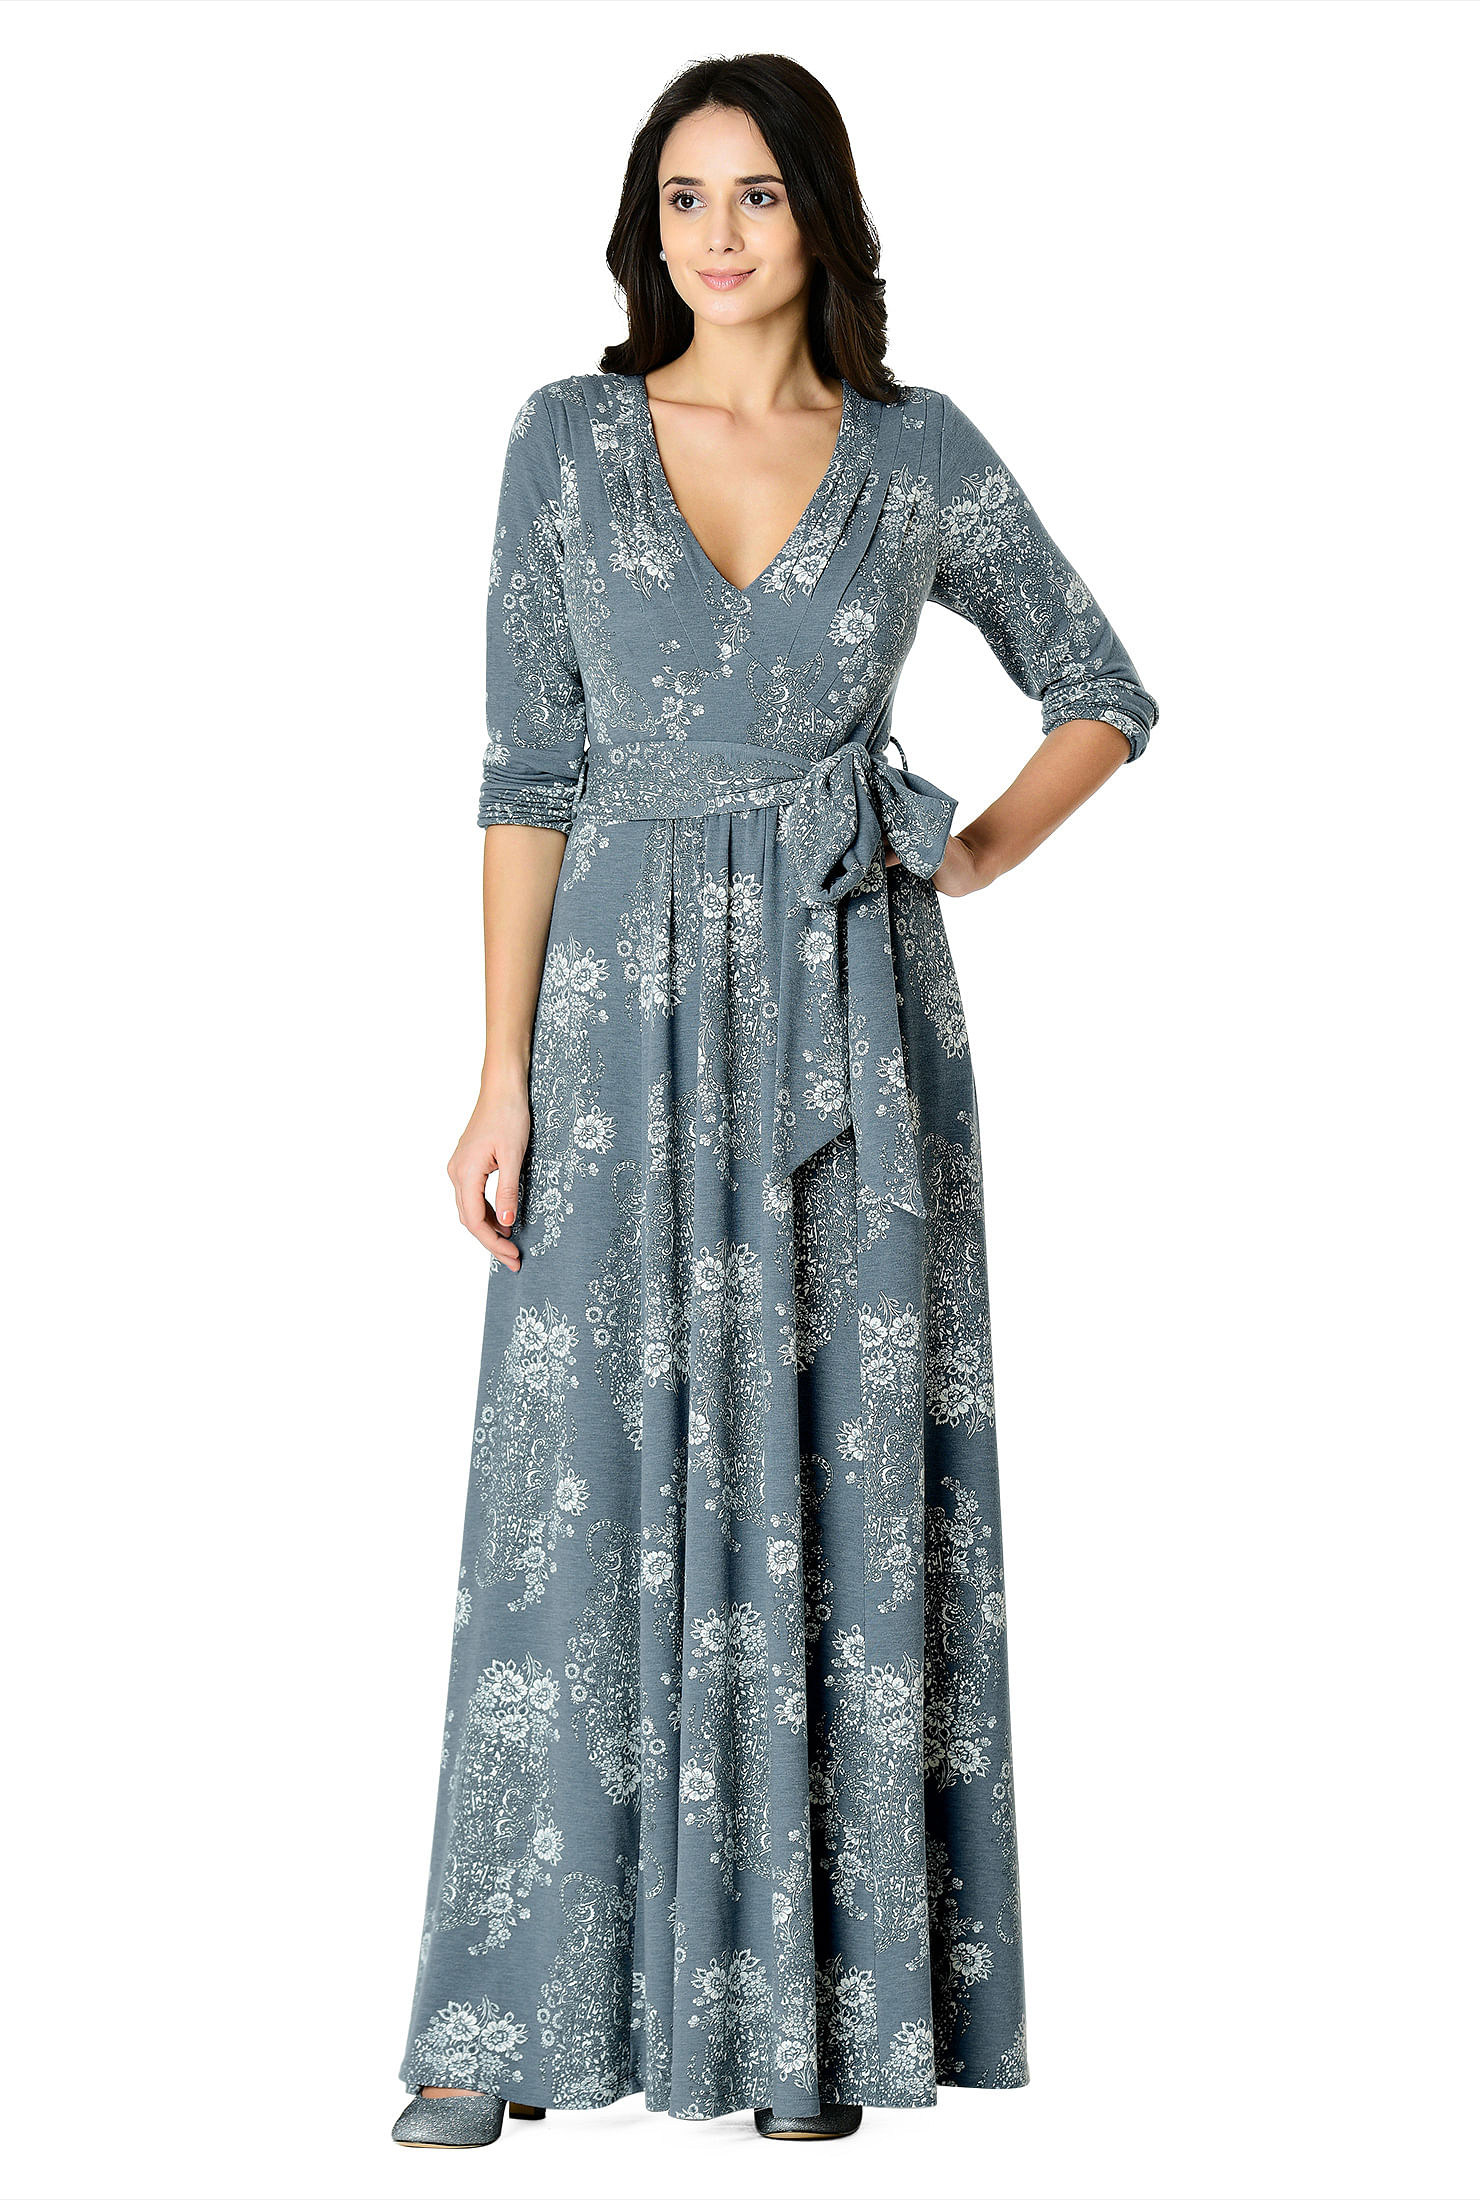 b2d6d39857 ... floral print cotton knit maxi dress. Out of Stock. , 2